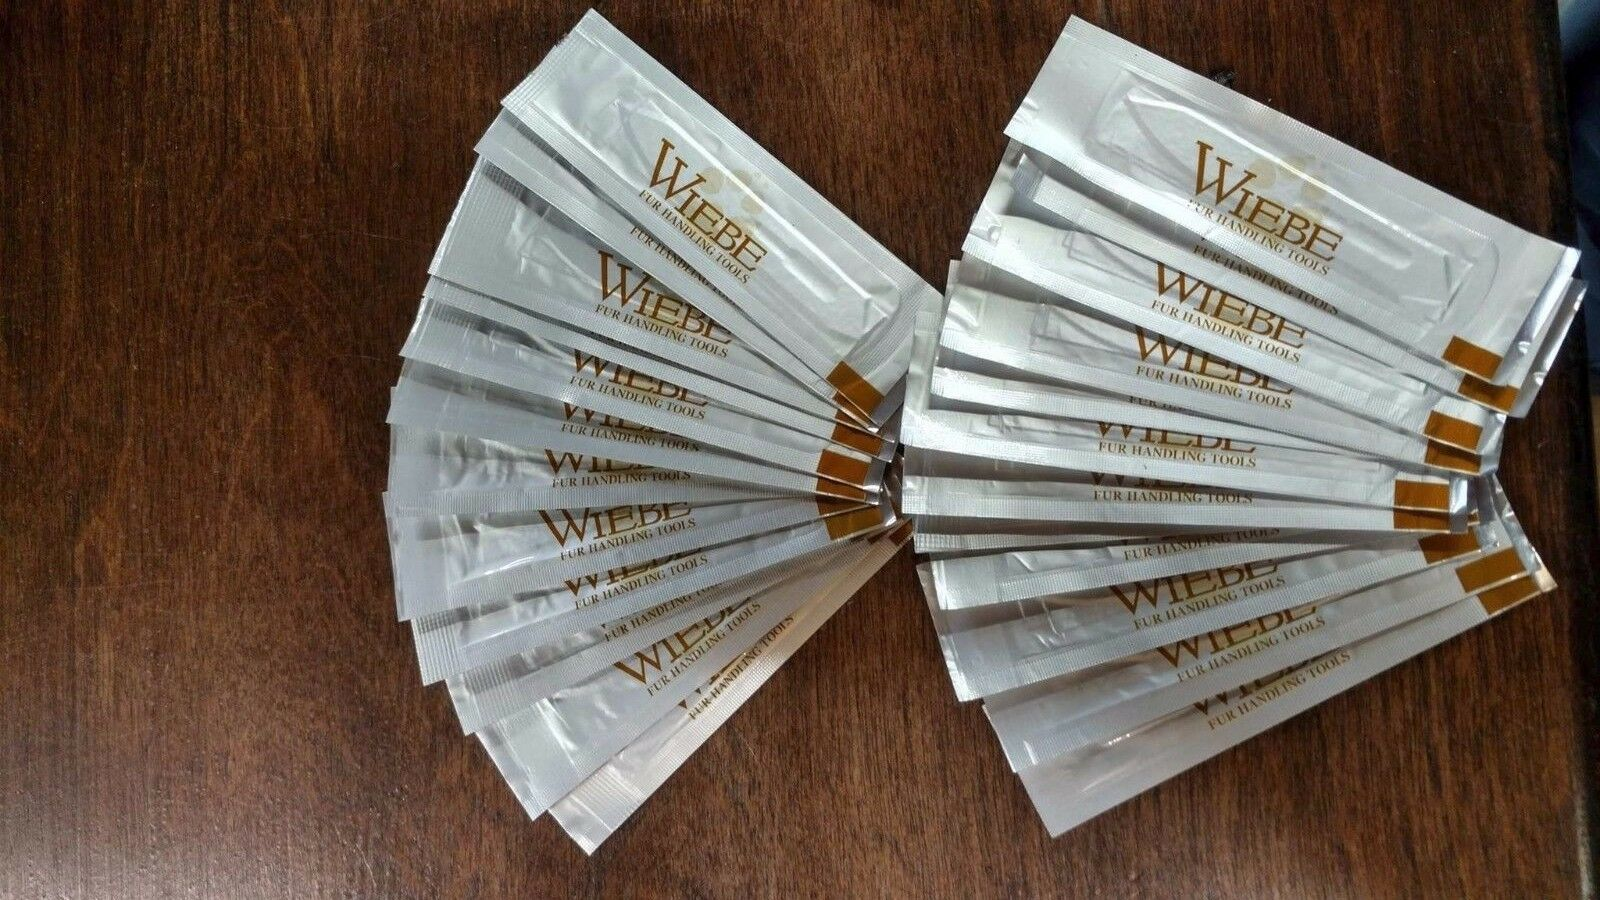 Wiebe Replacement blades